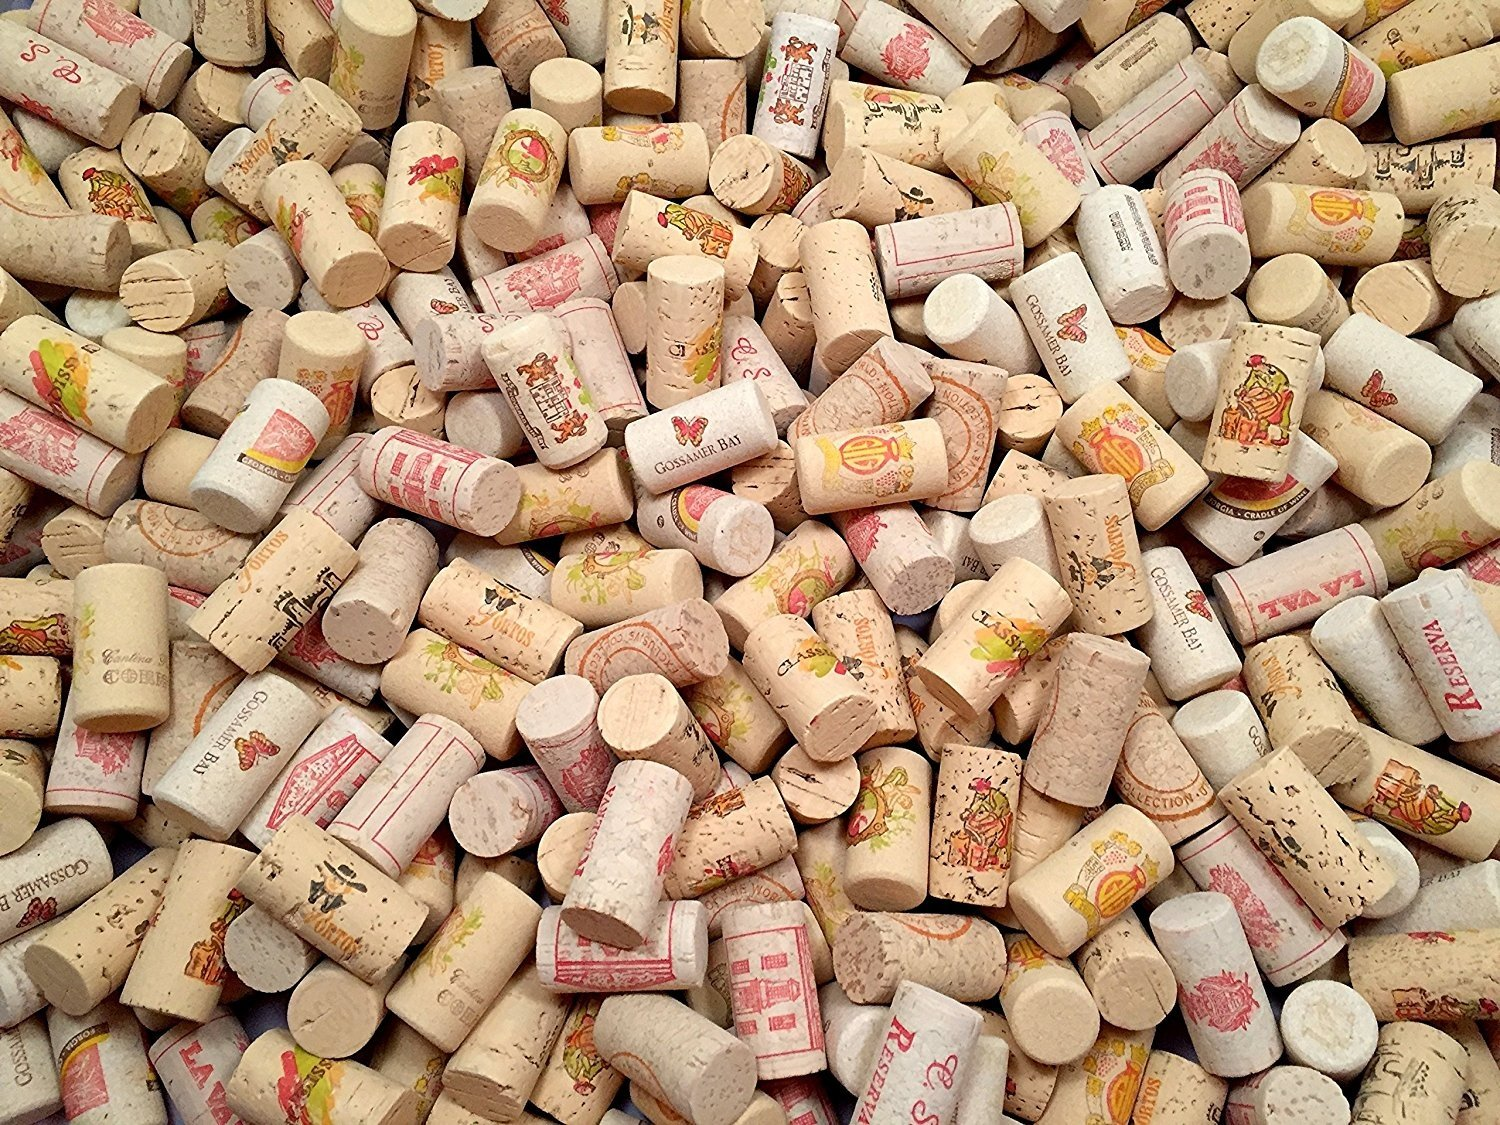 COLOR Wine Corks | Brand New, Authentic, All Natural | Printed, Winery-Marked, Craft Grade | Uncirculated, Uniform & Clean | Excellent for Crafting & Decor | Pack of 25/50/100 Premium Wine Cork (100)